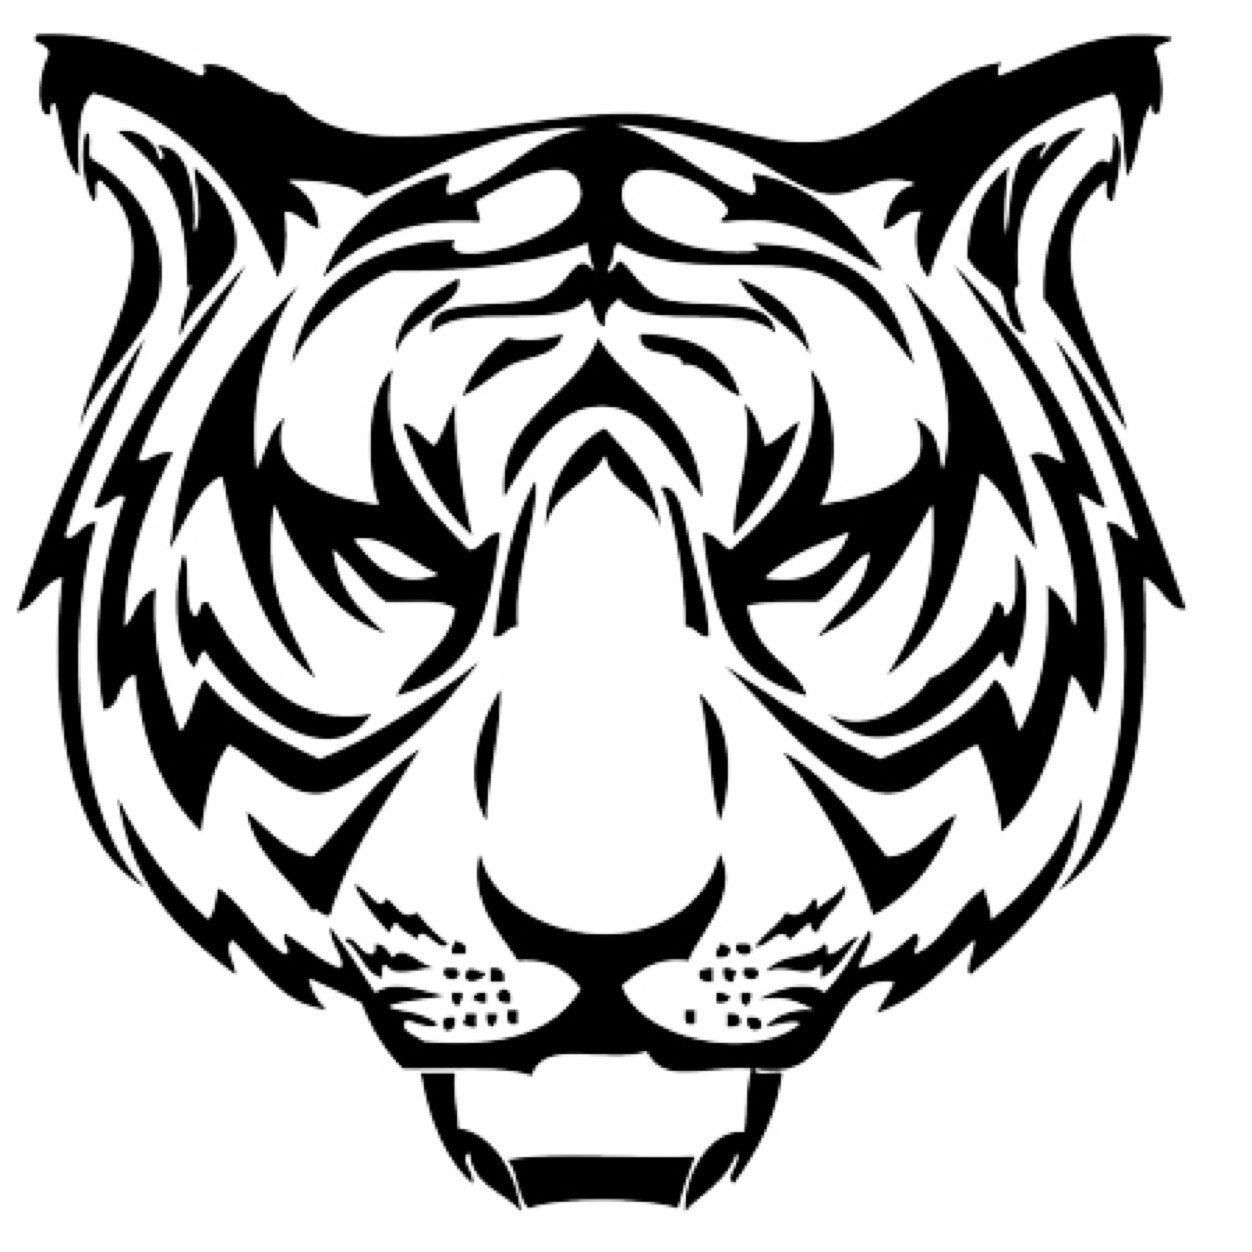 1252x1252 Tiger Face Drawing Silhouette At Getdrawings Com Free For Personal